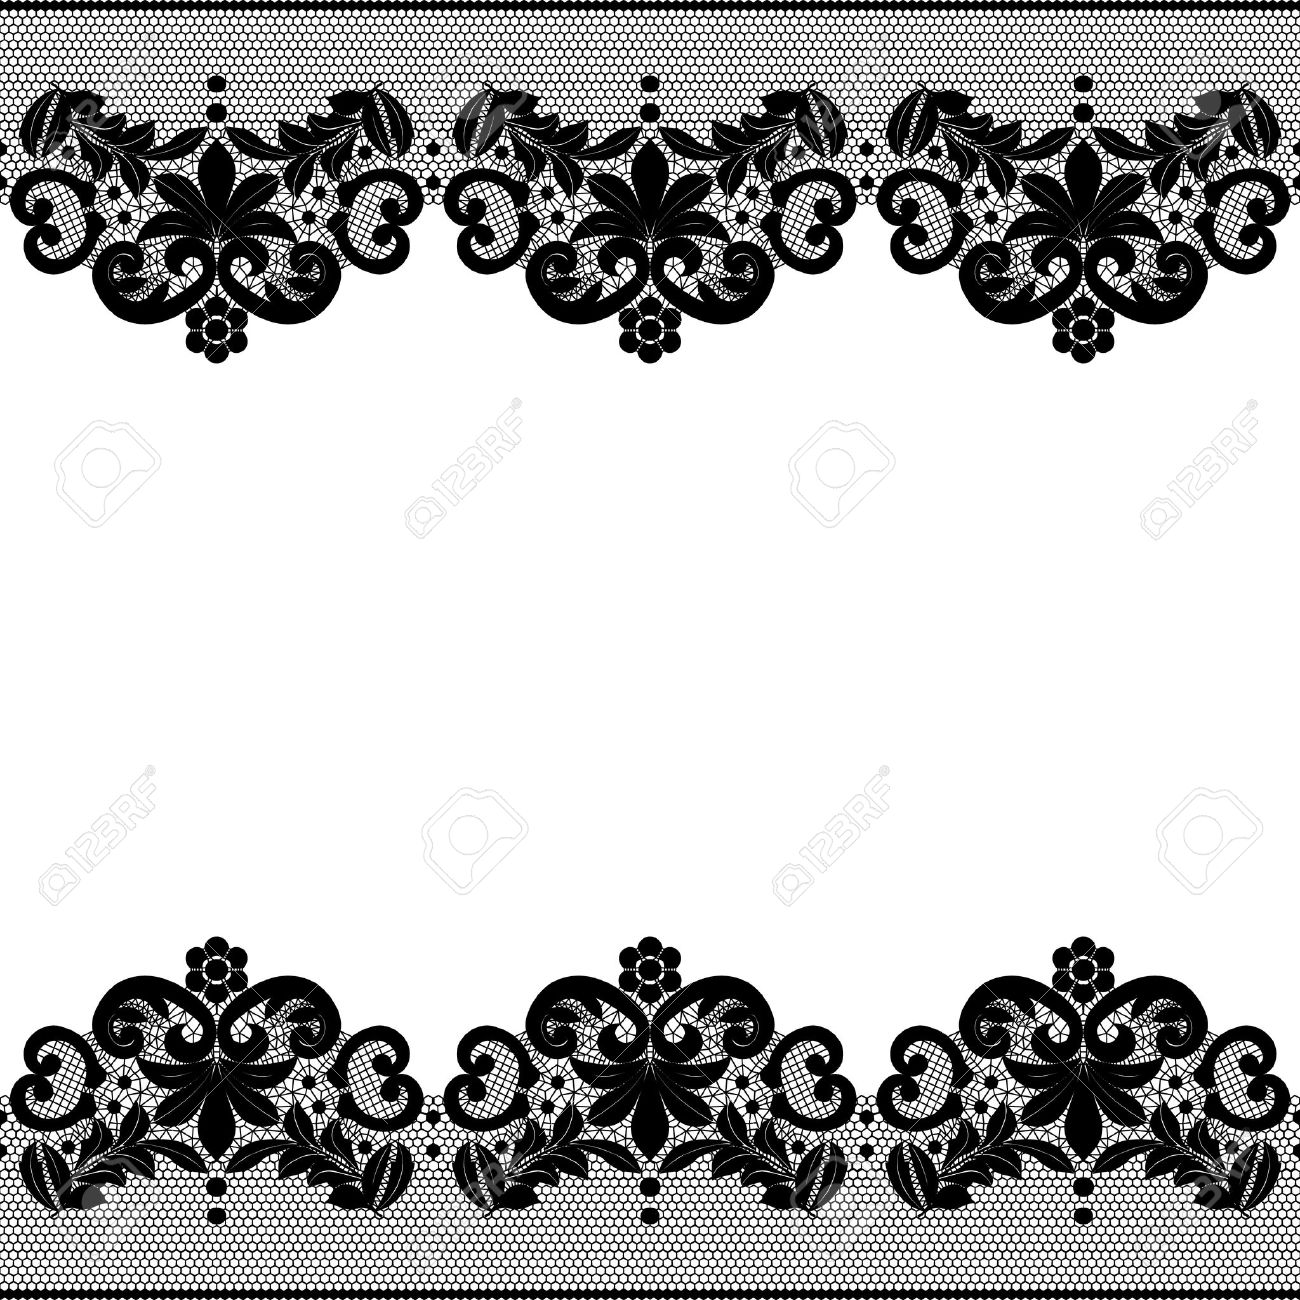 Black Lace Wallpaper Border